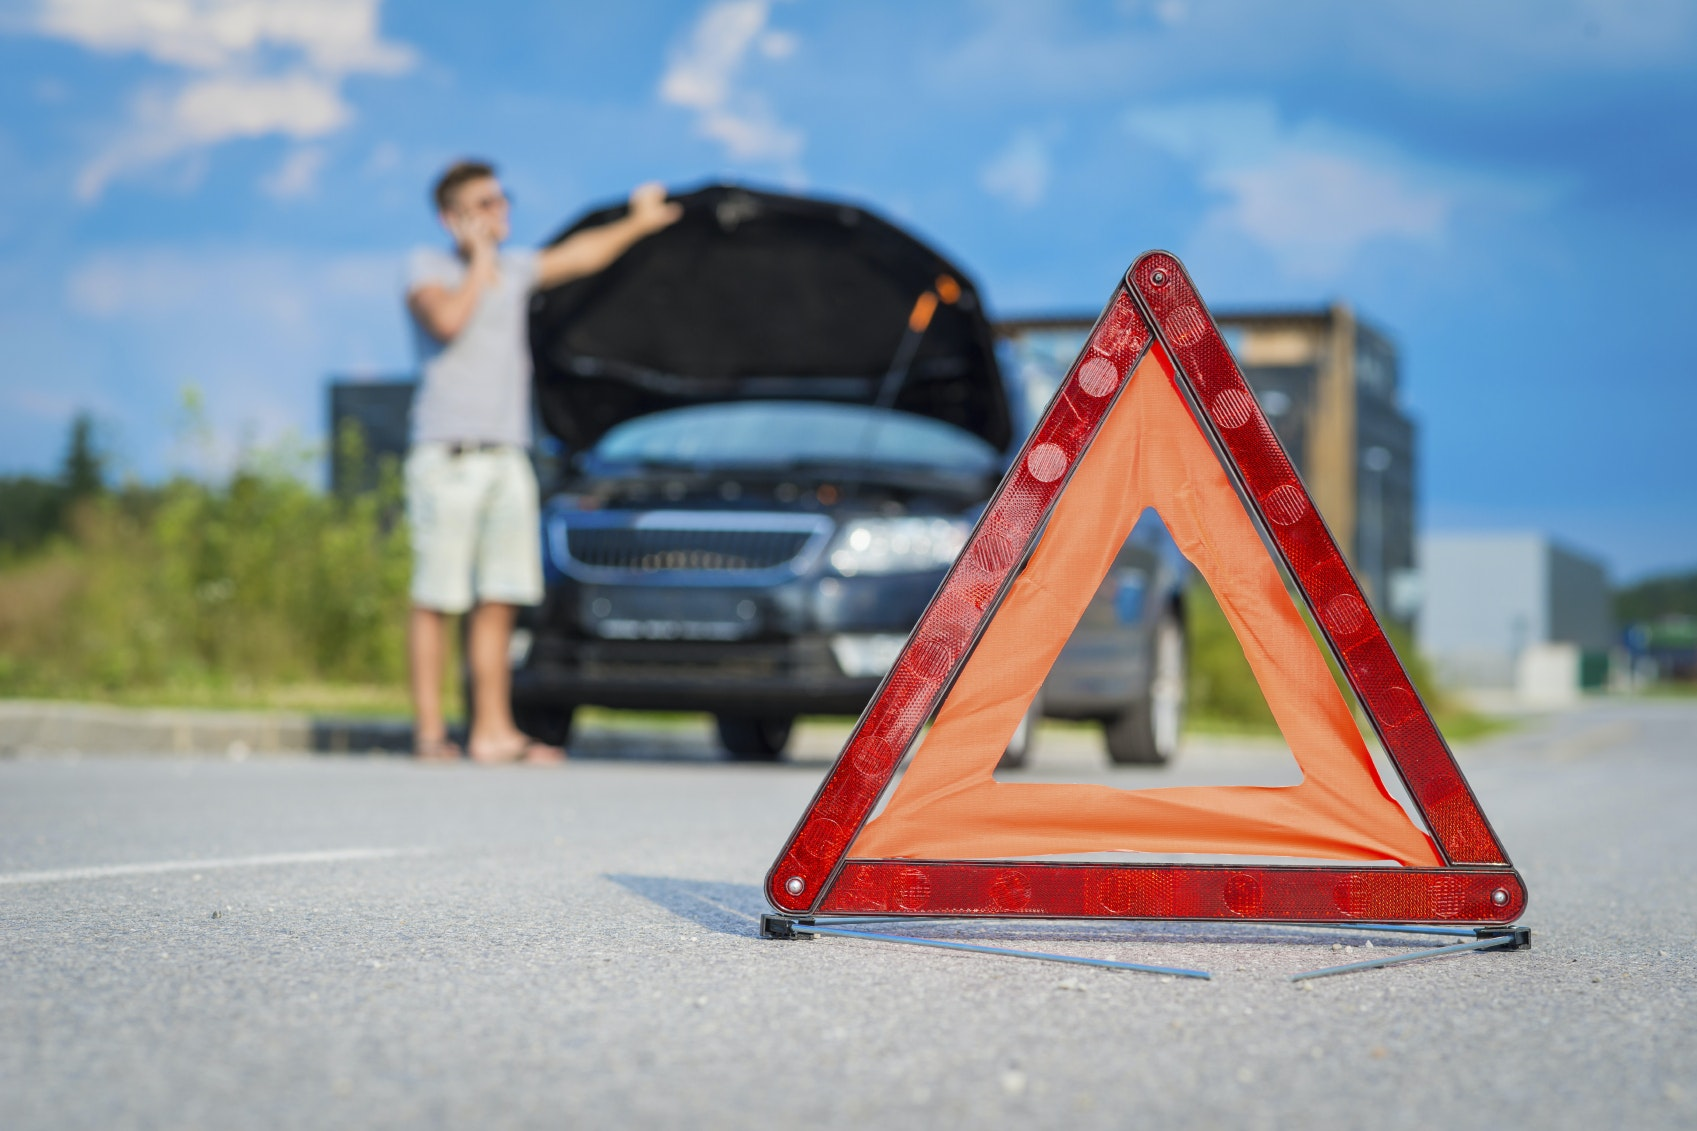 5 Emergency Items Everyone Should Have In Their Car